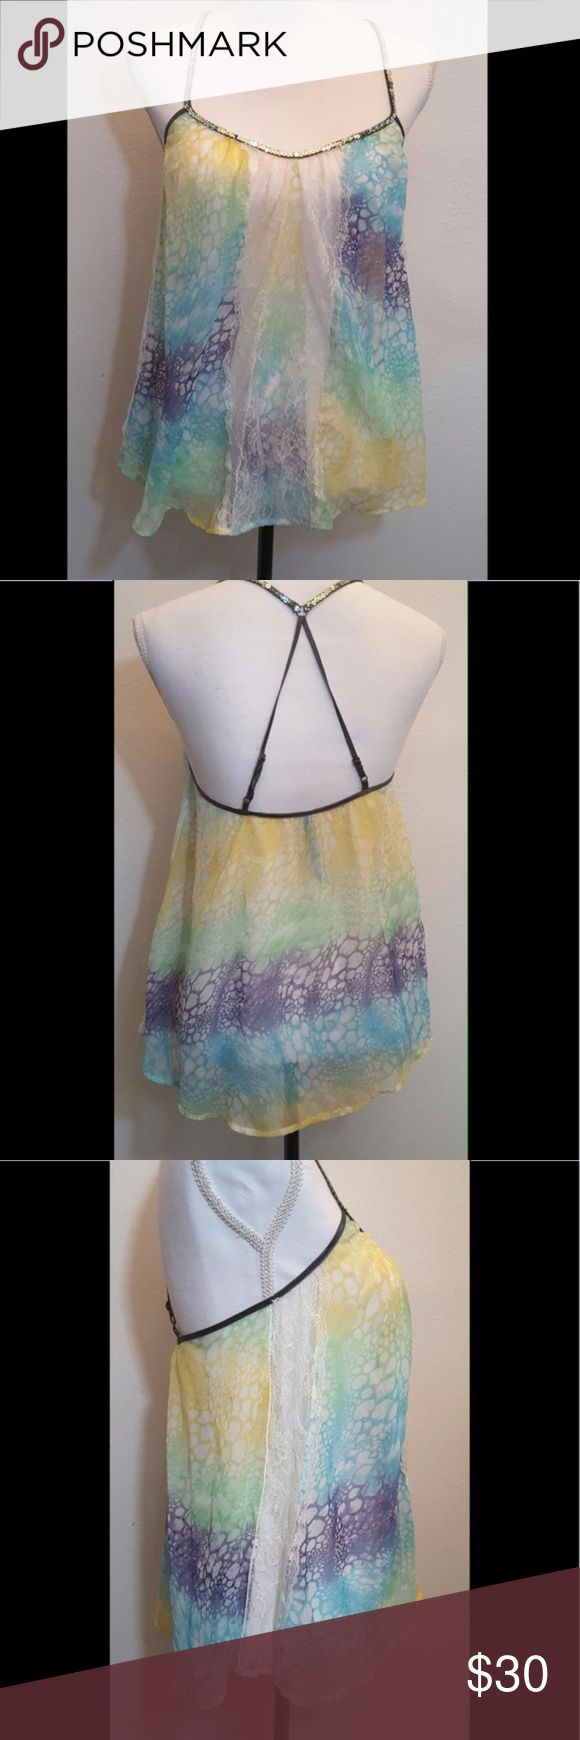 Rainbow Animal Print Tank with Lace Accent Festival ready sheer rainbow animal print tank with lace accent and sequin straps. 100% poly, only worn once, in excellent condition. Free People Tops